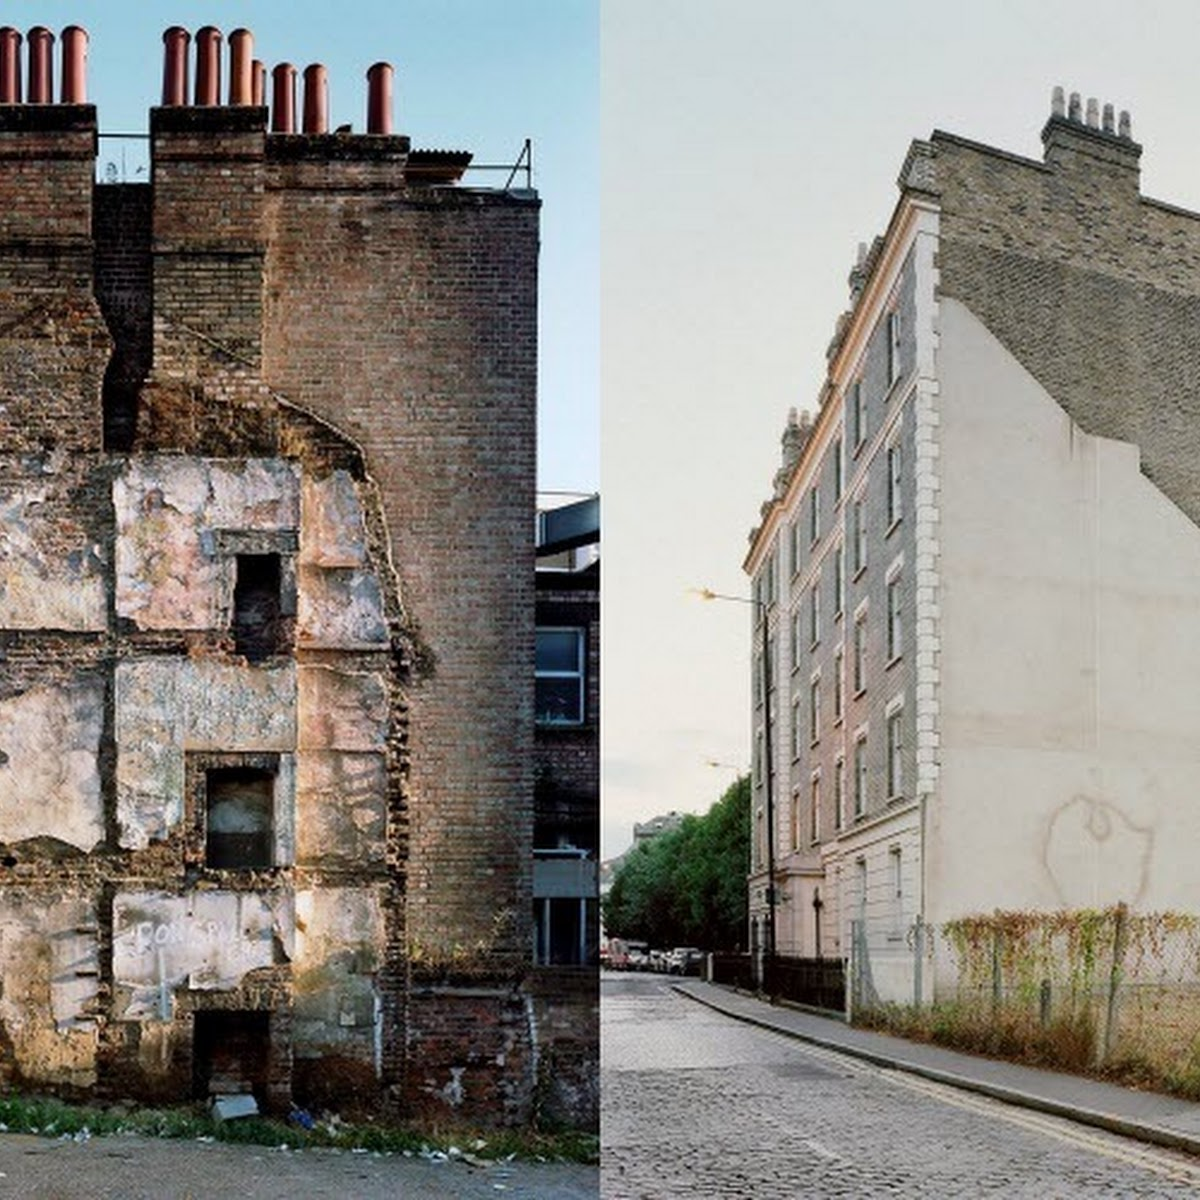 London's 'Missing Buildings' by Thom And Beth Atkinson